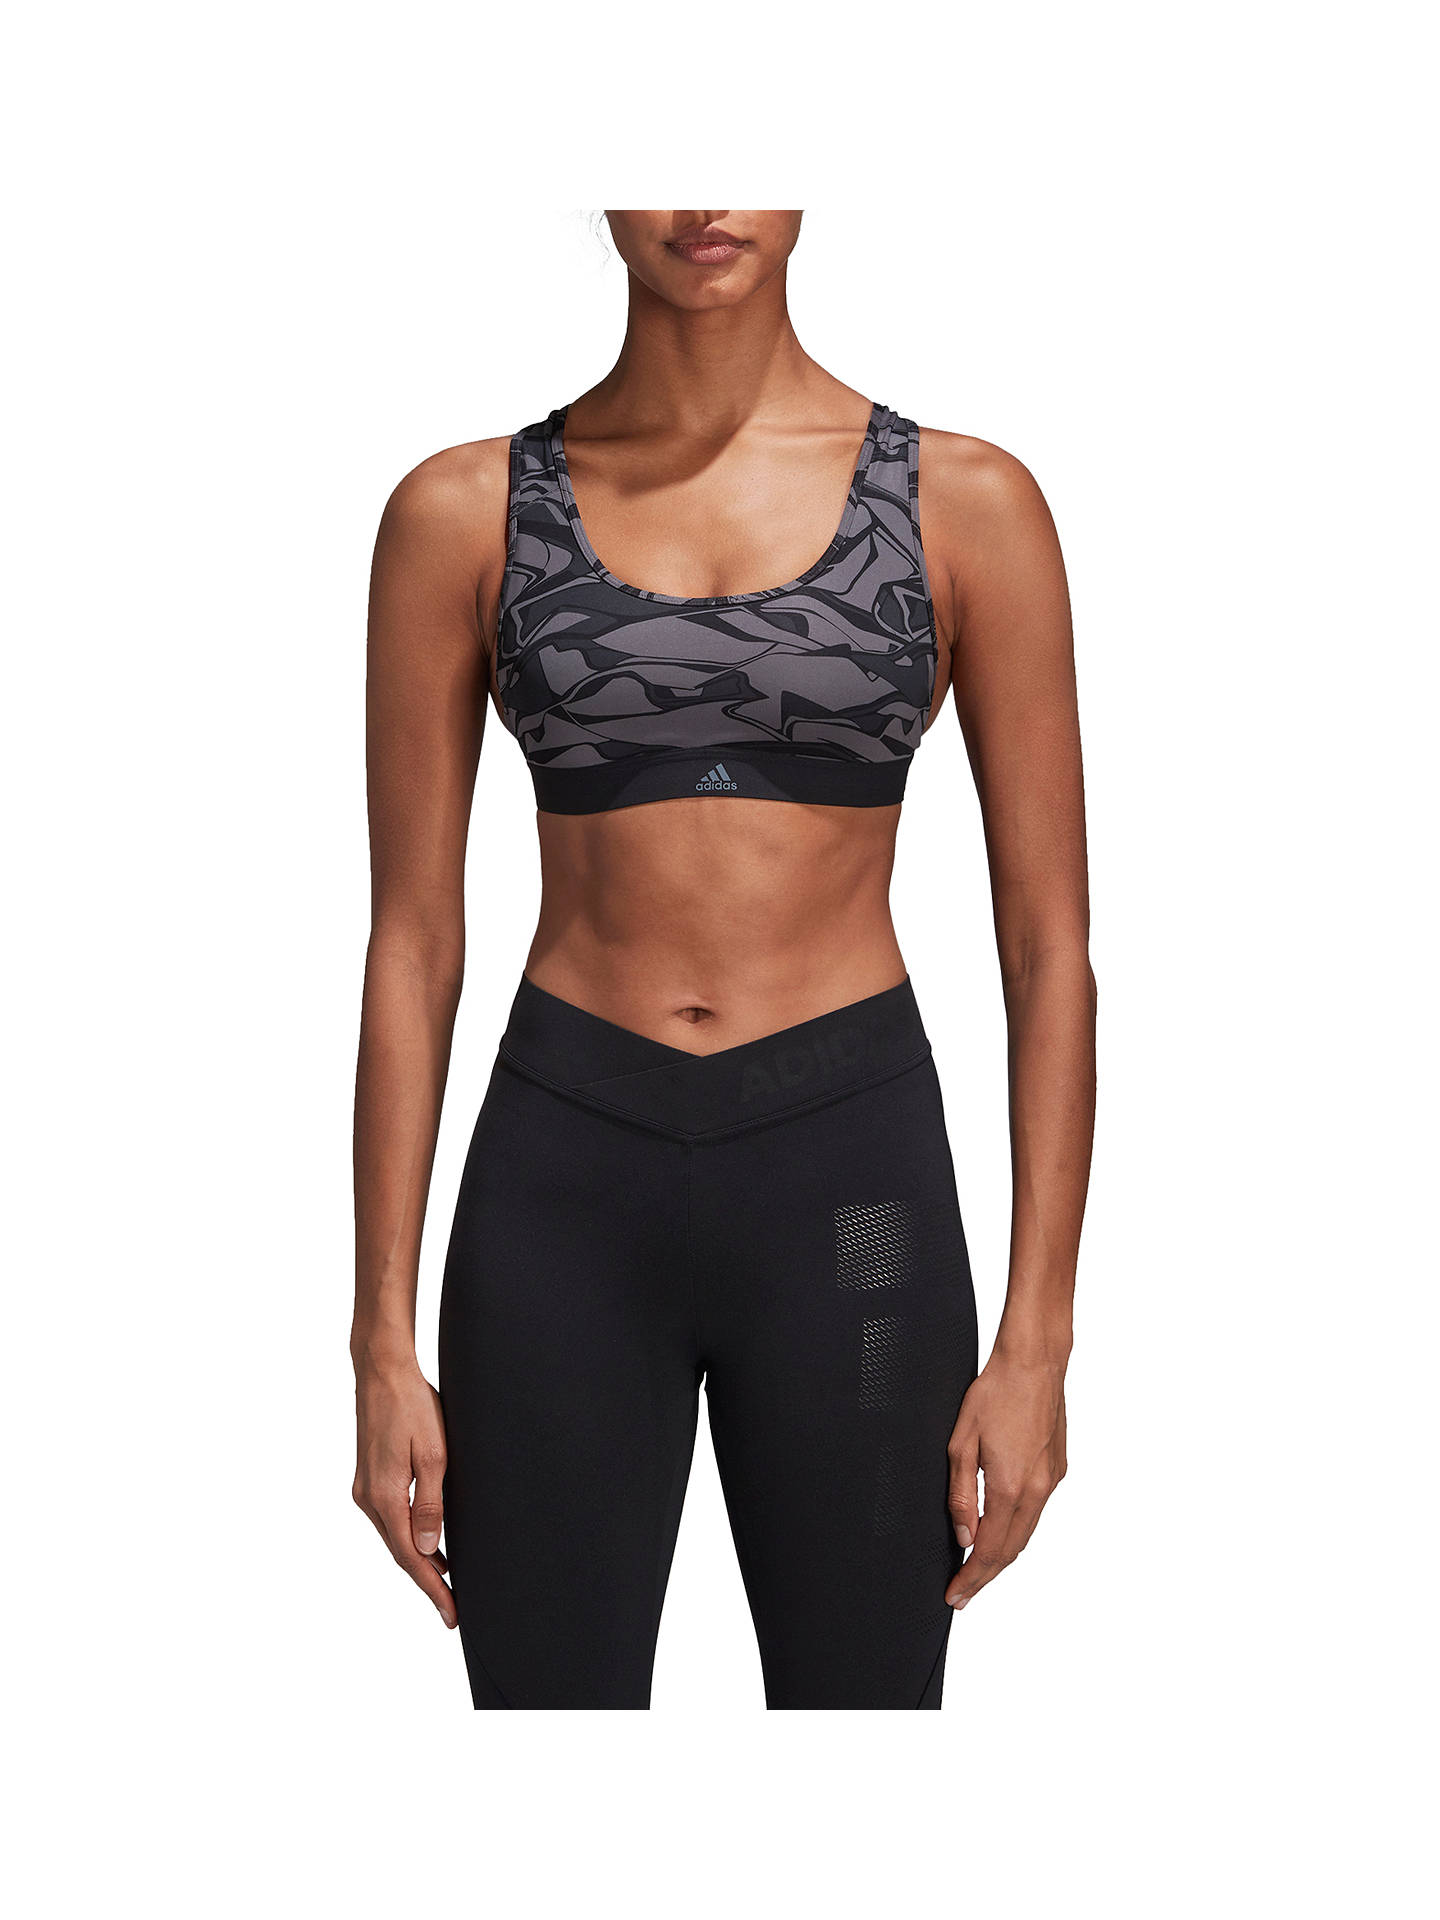 Buyadidas Don't Rest X Sports Bra, Multi, XS Online at johnlewis.com